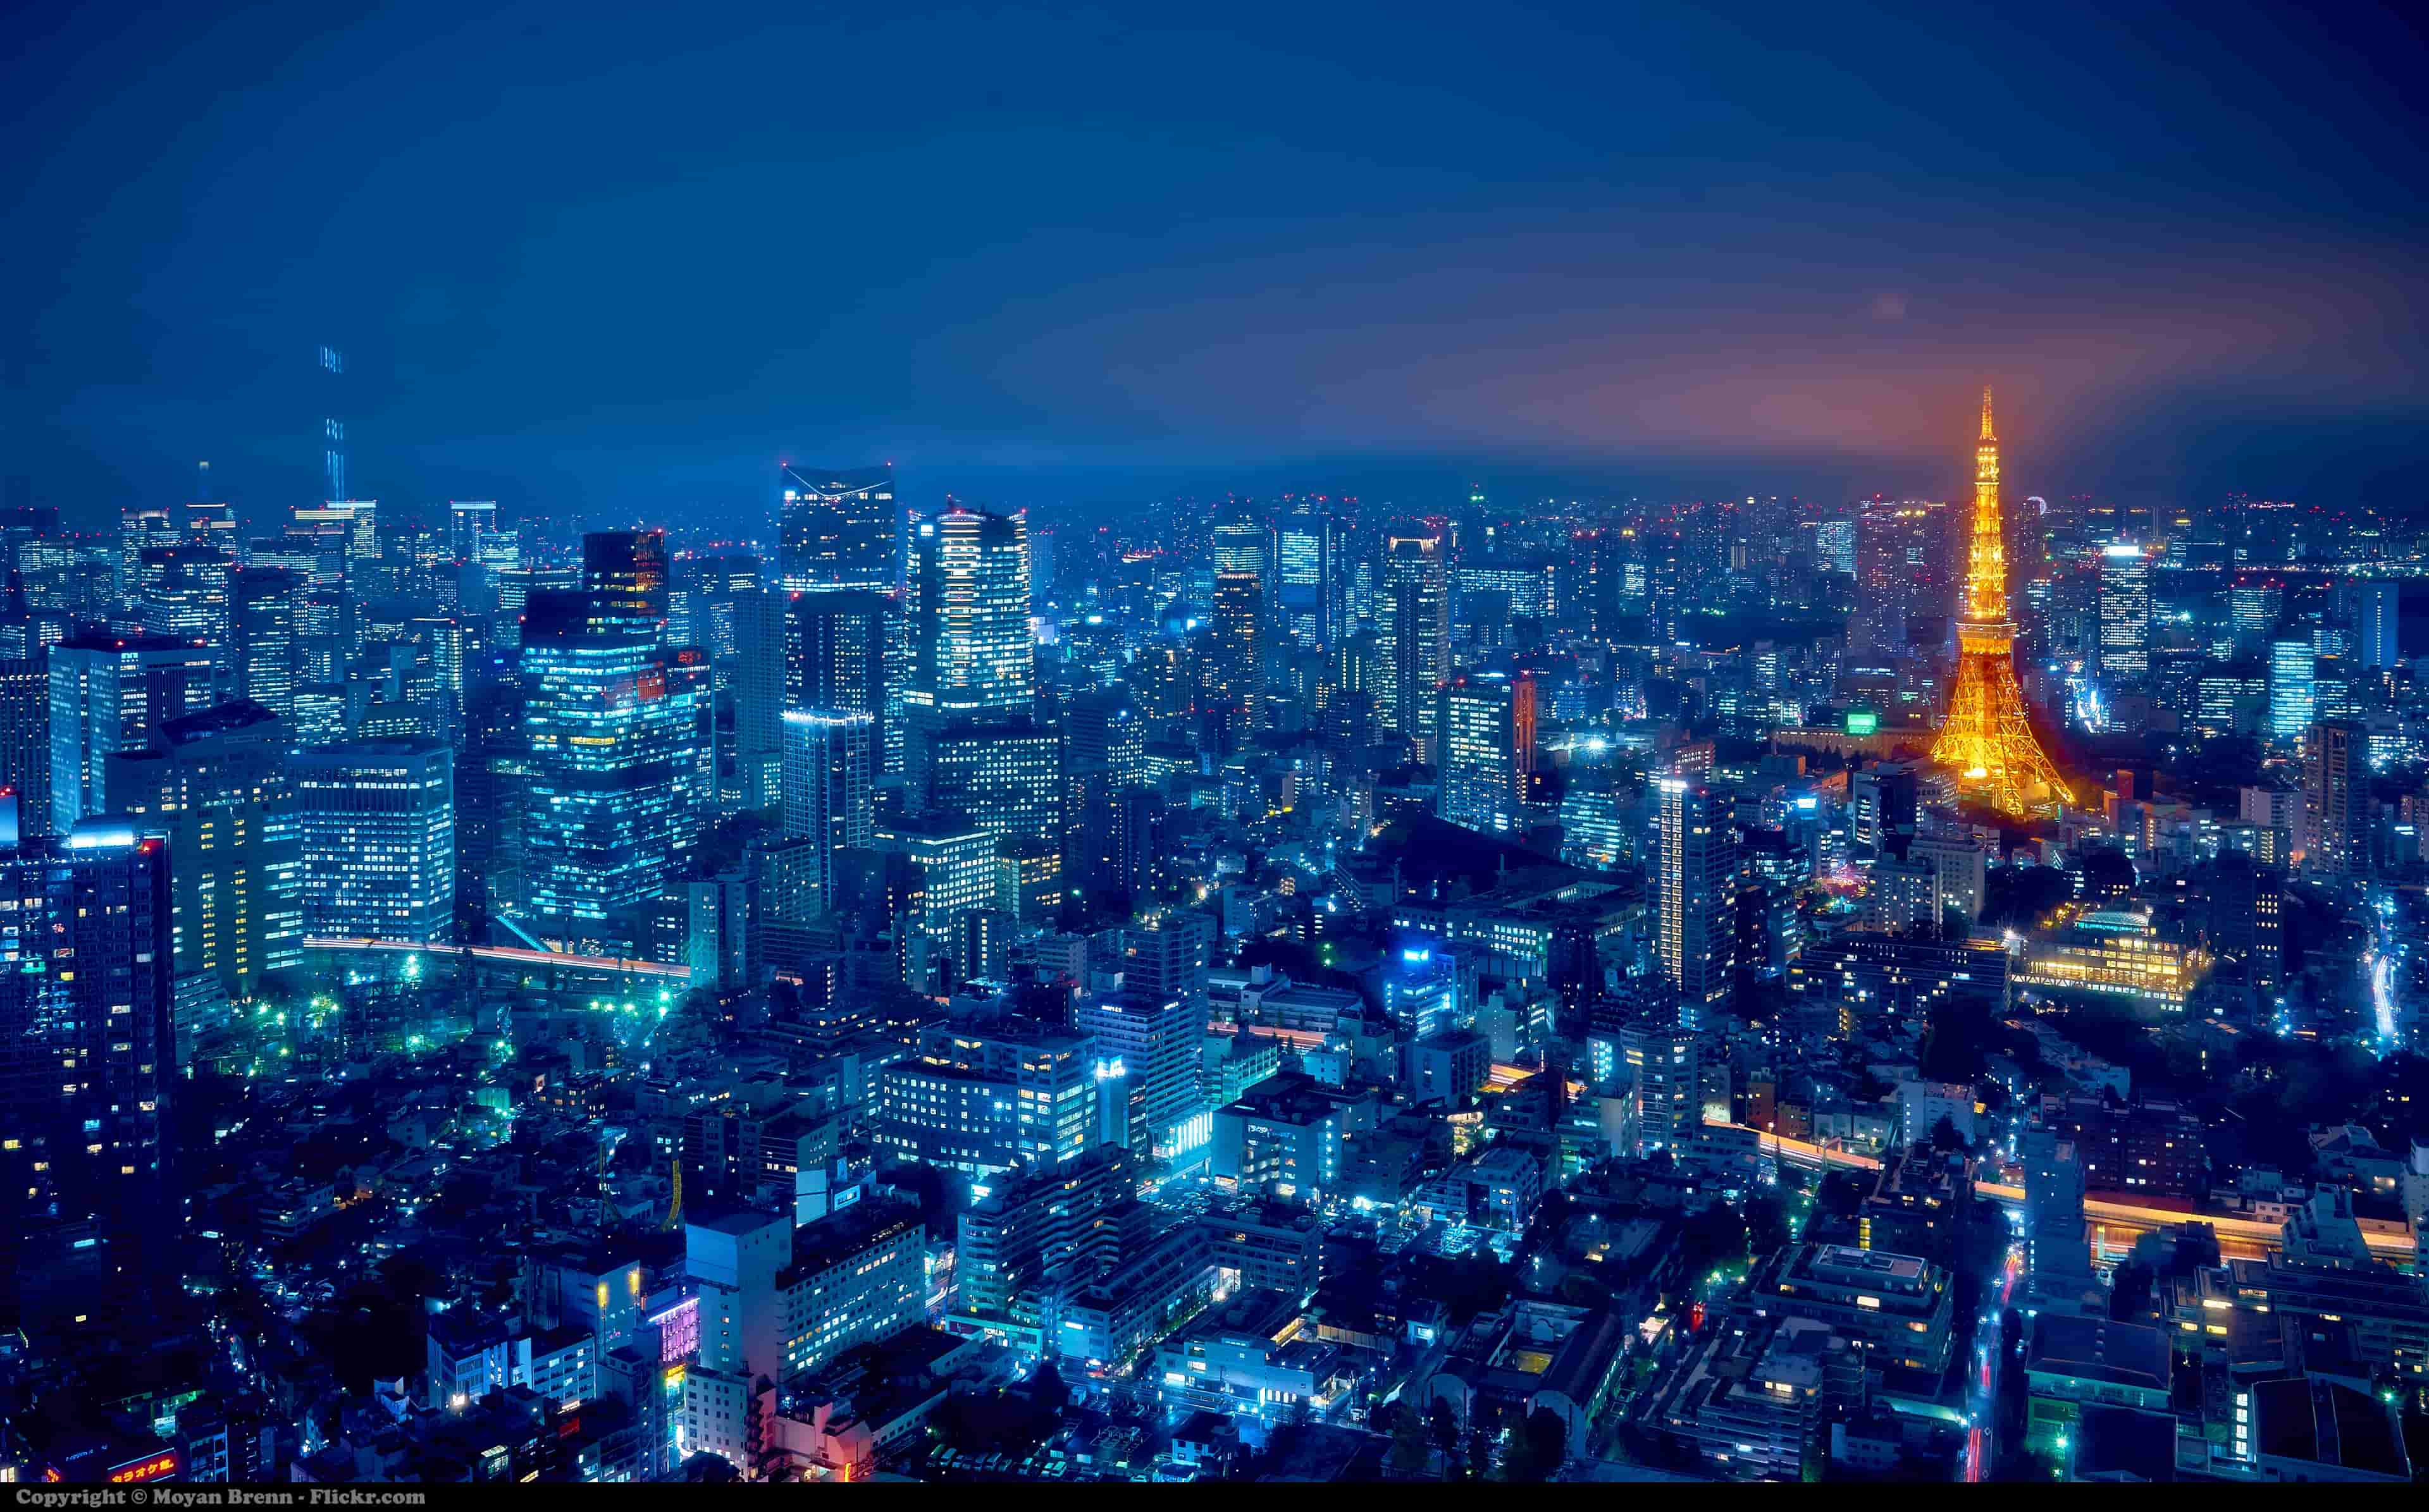 Shining Tokyo Tower by night in Japan